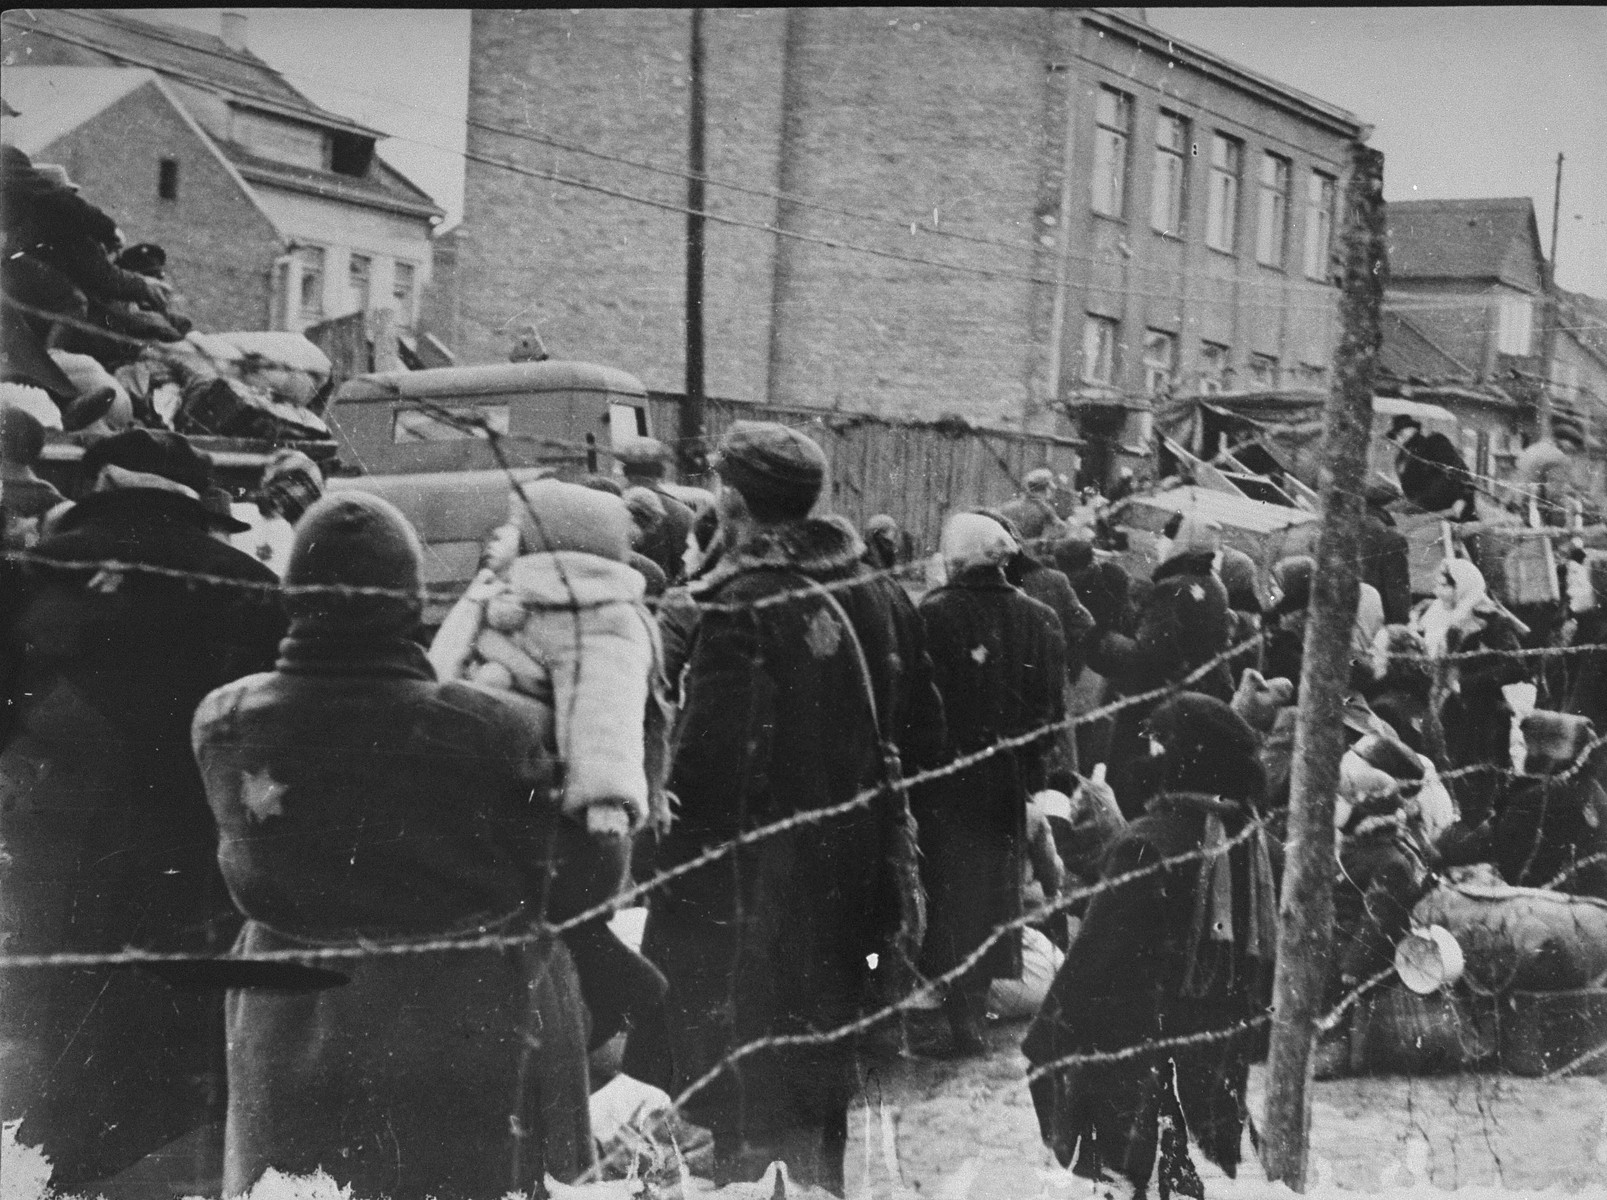 Jews in the Kovno ghetto who have been assembled for deportation, look on while their luggage is loaded onto trucks.